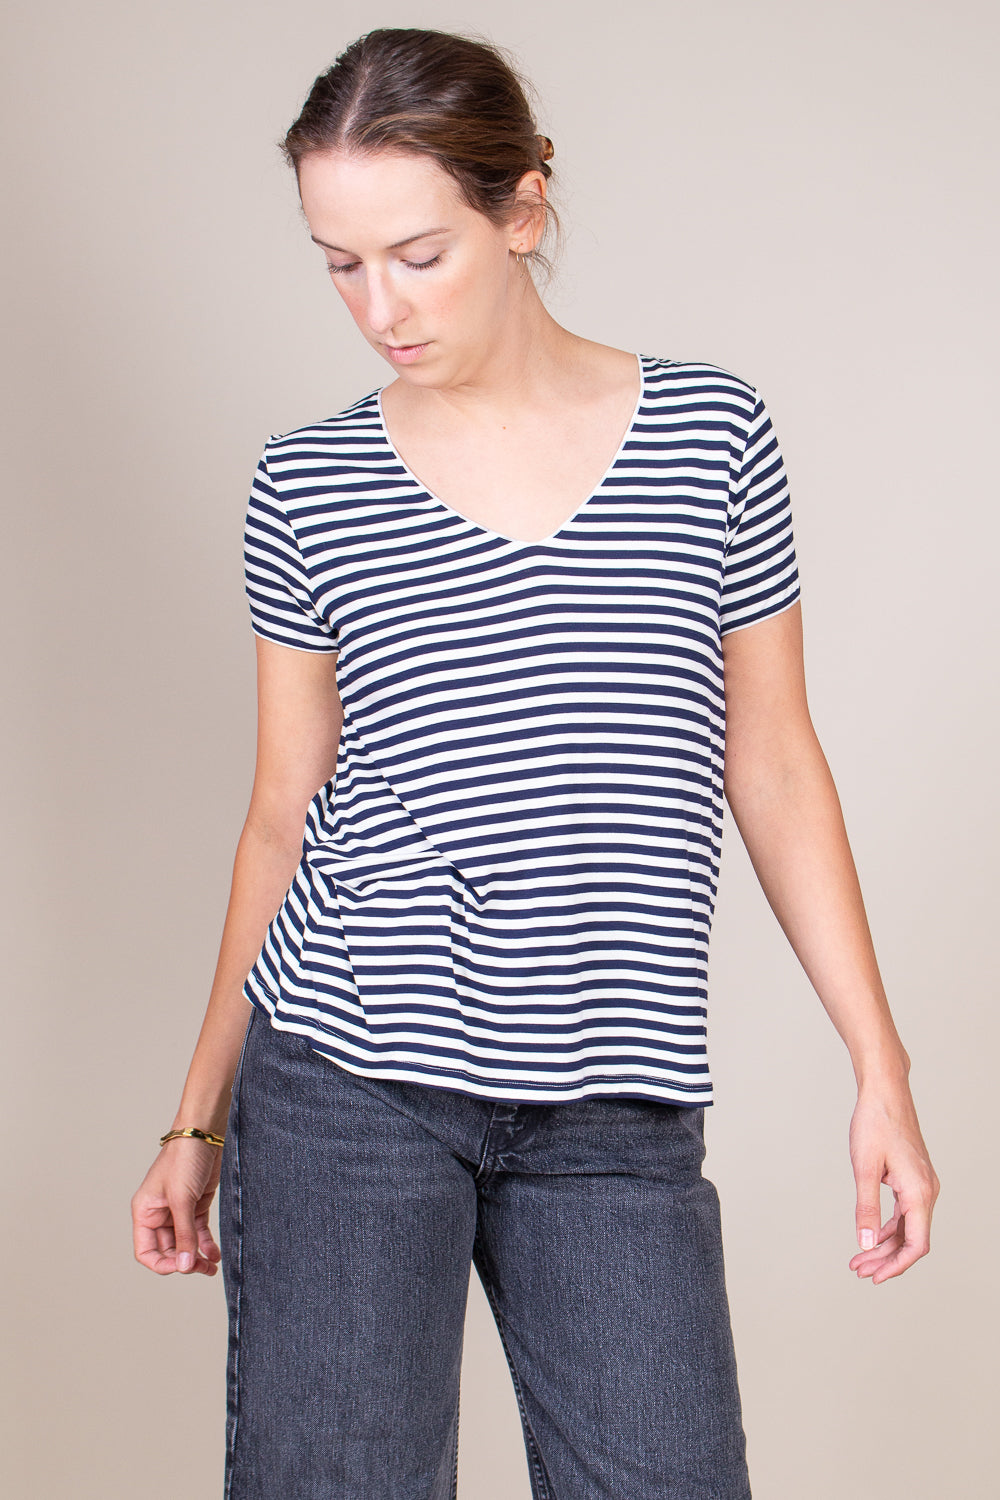 Striped S/S V-neck in Milk/Marine